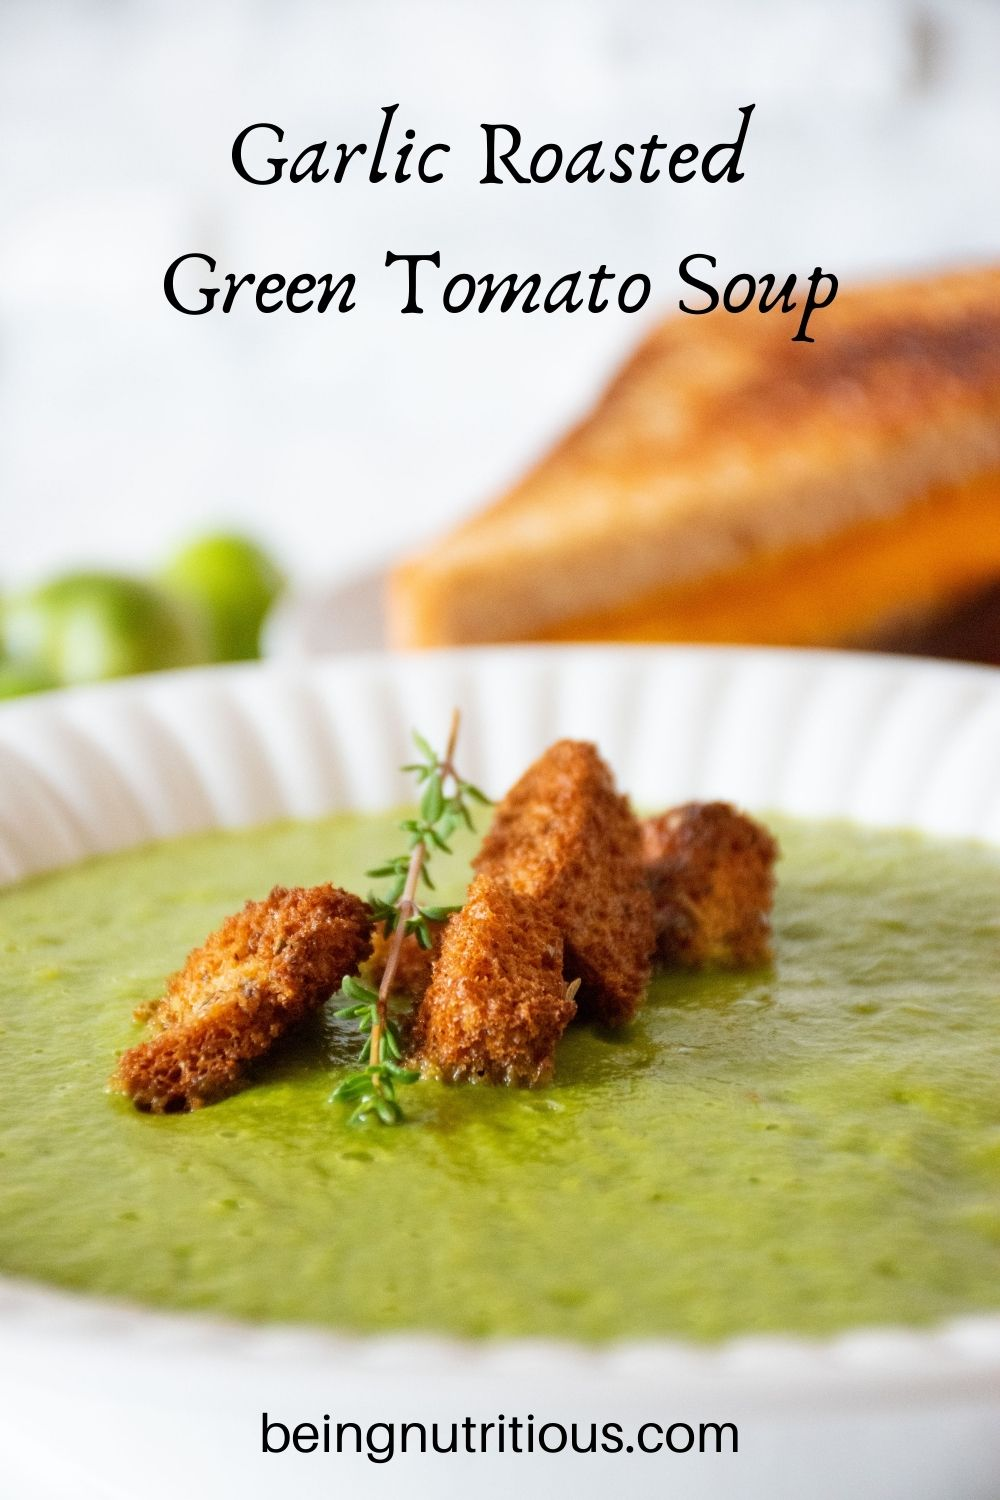 Closeup shot of green soup in a bowl with homemade croutons. Text overlay: Garlic Roasted Green Tomato Soup.